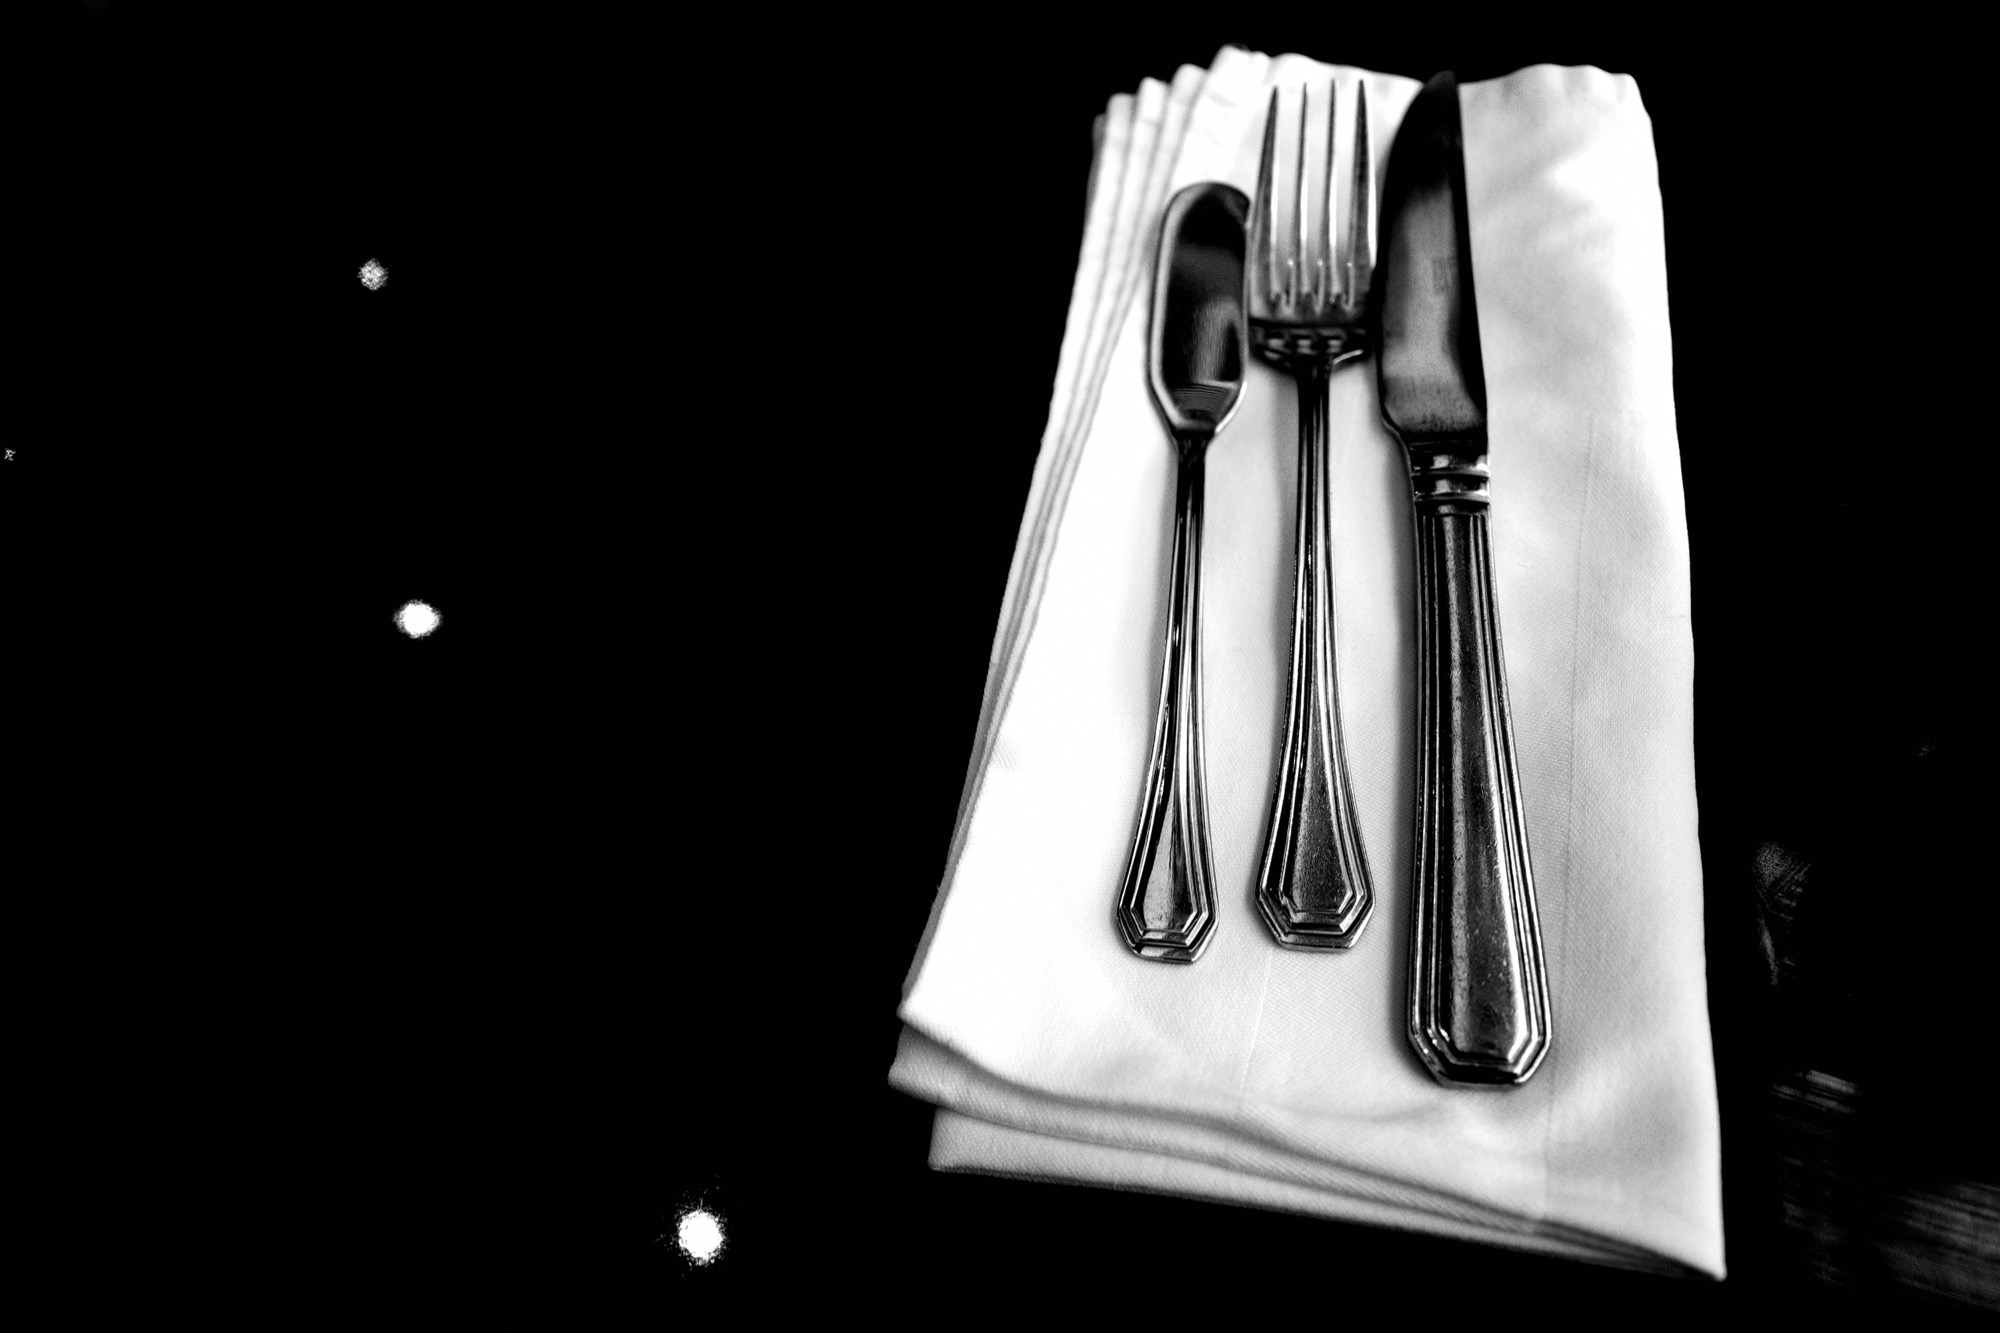 knives and fork